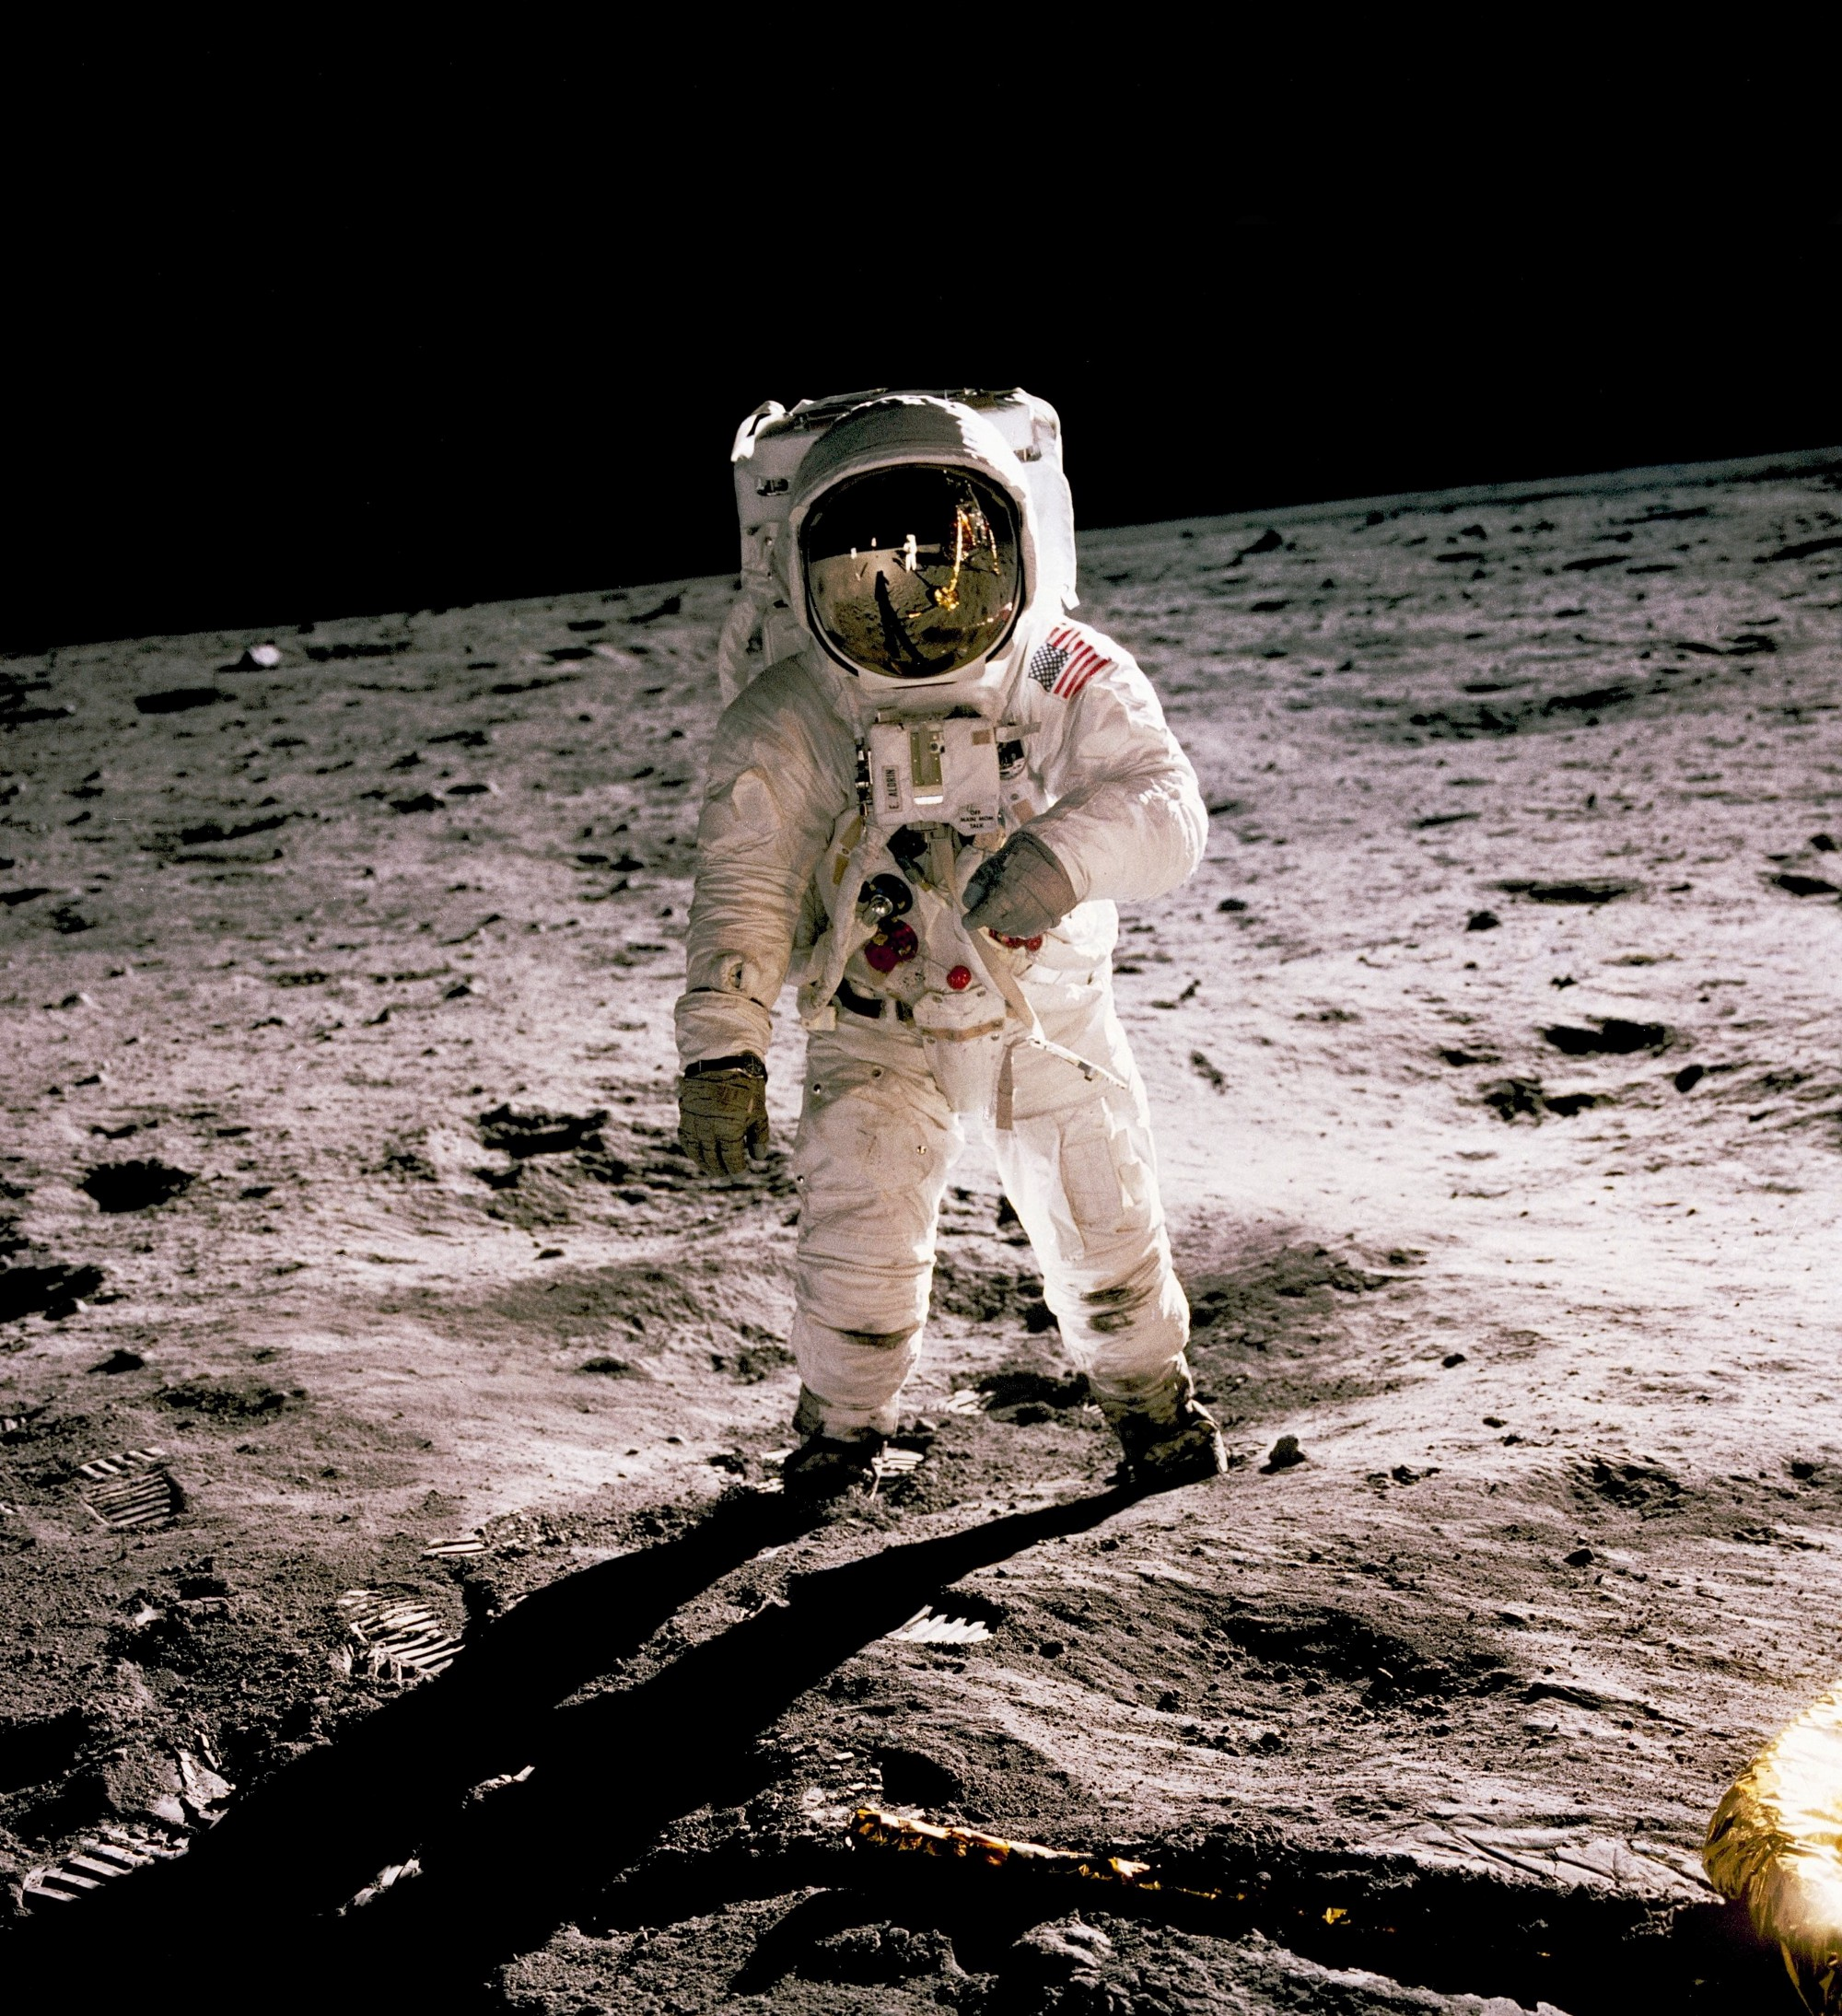 picture of astronaut Buzz Aldrin on the moon